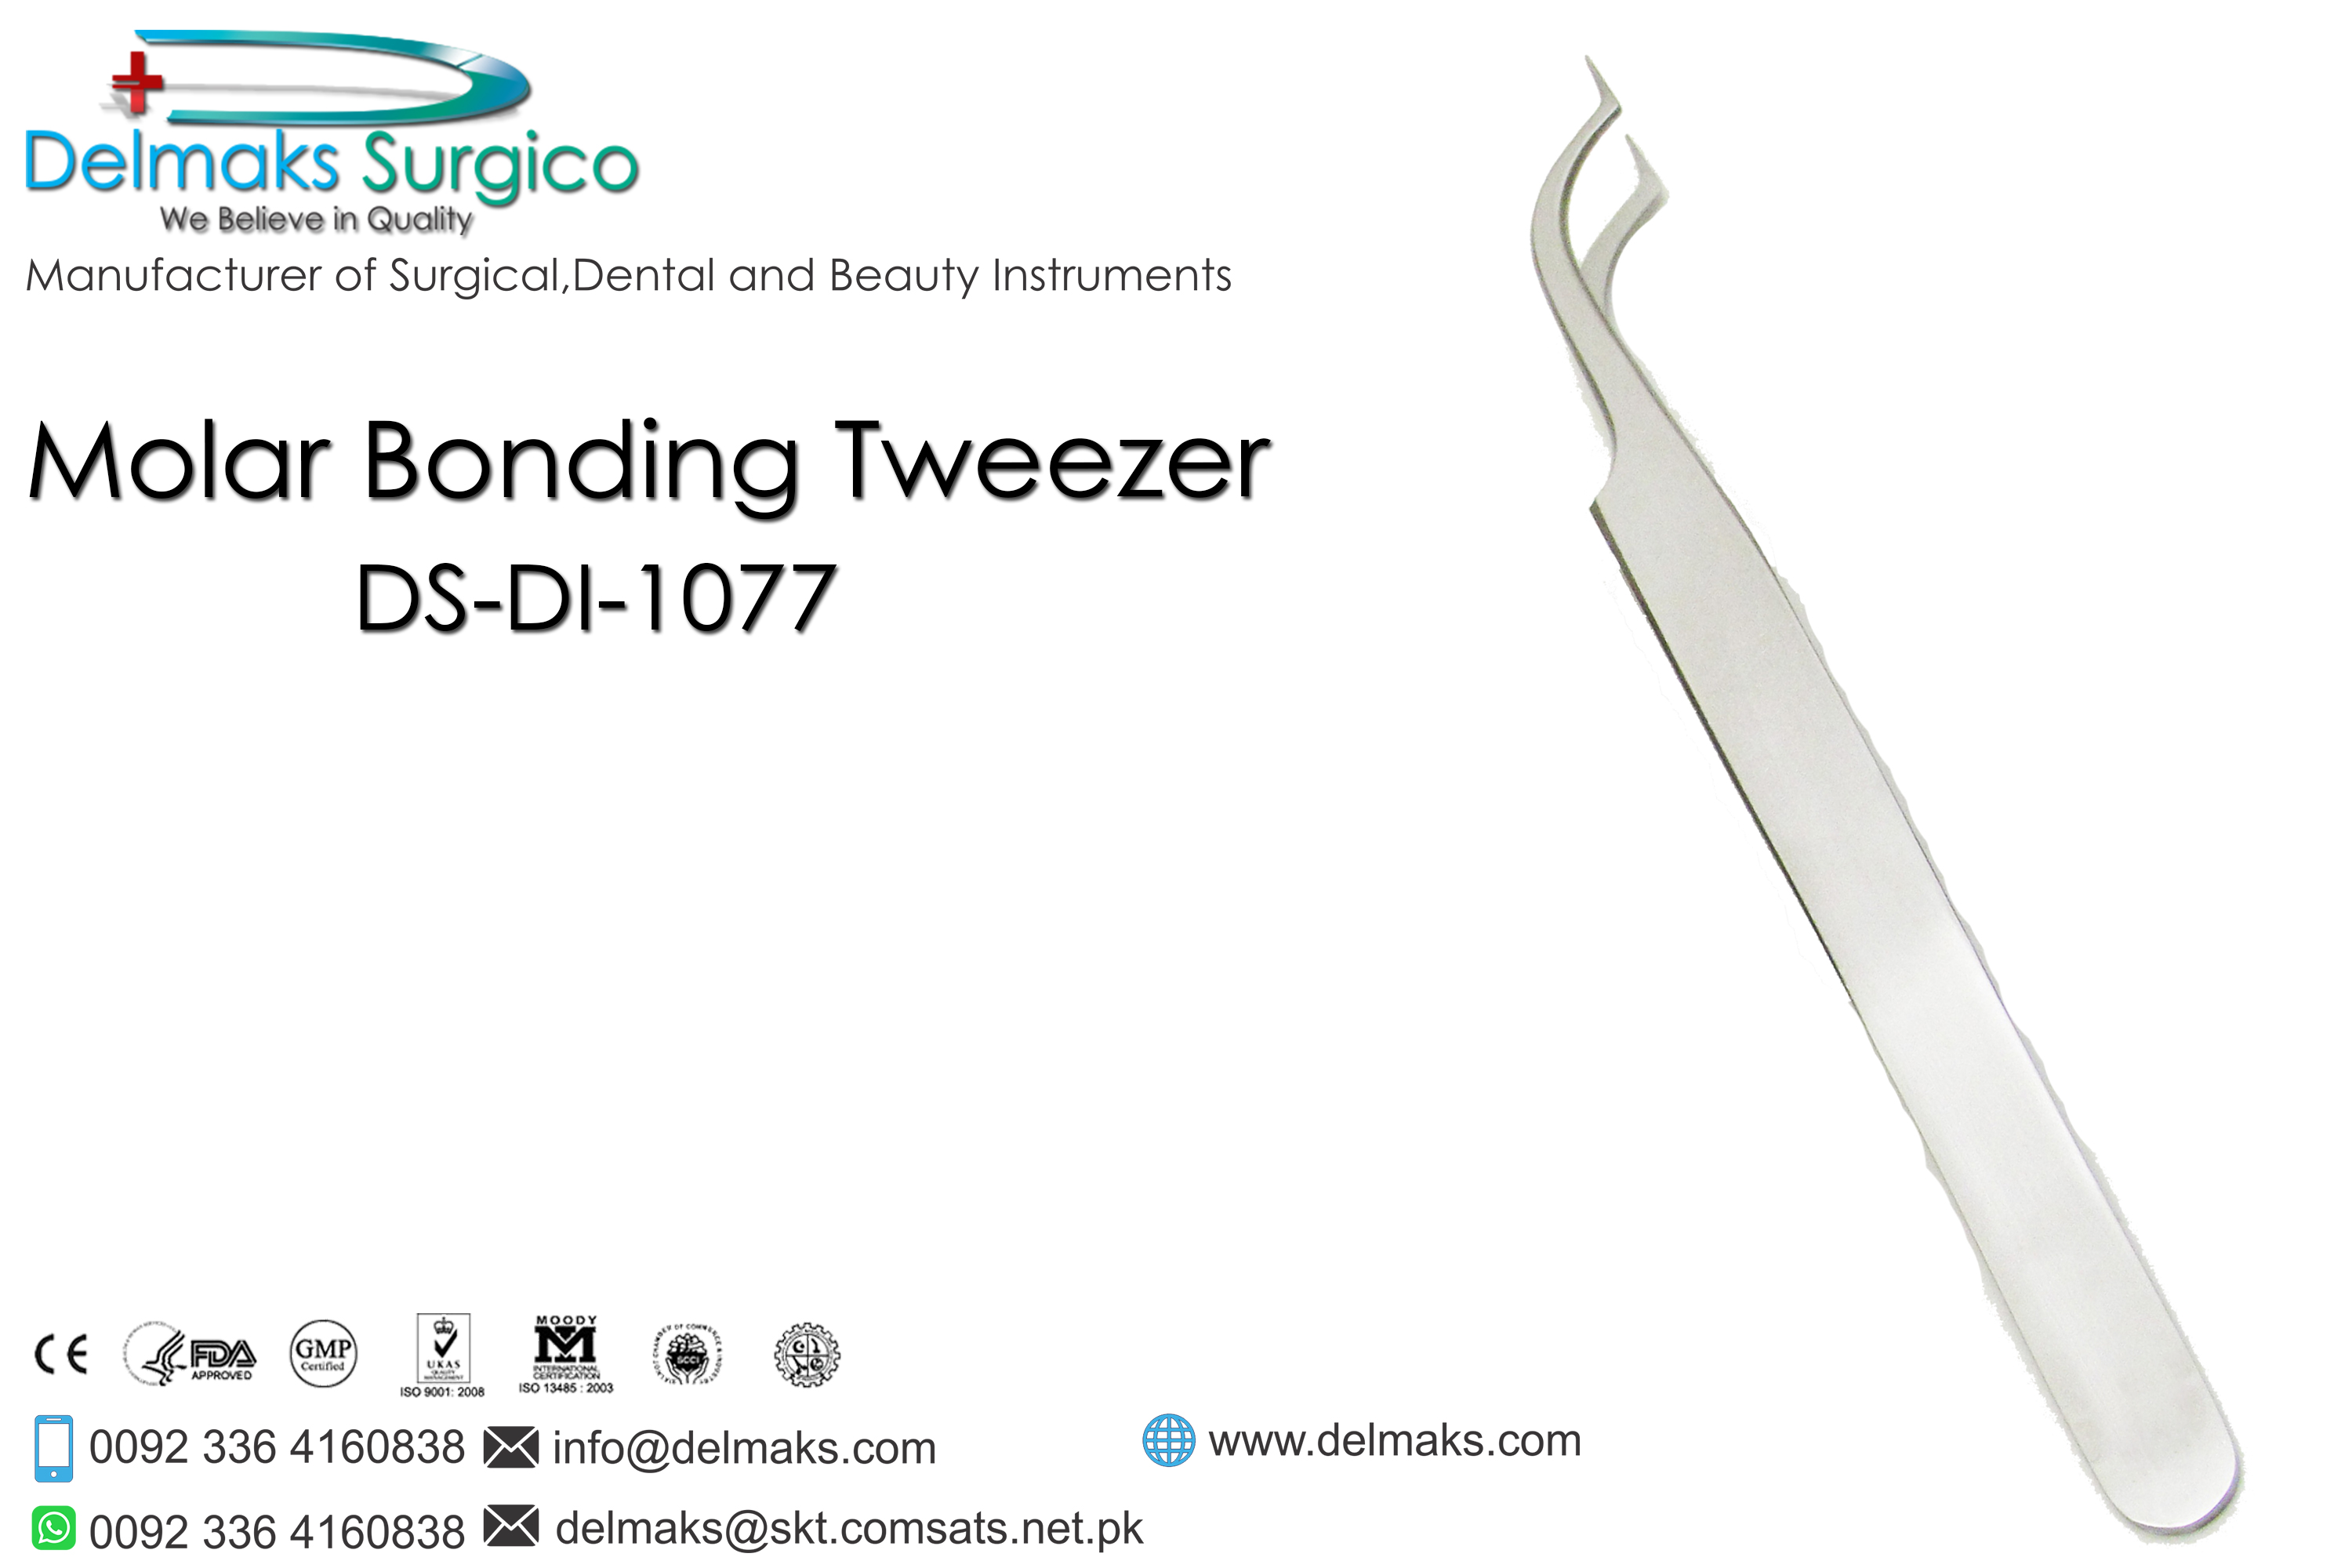 Molar Bonding Tweezer-Bracket Tweezers-Orthodontics-Dental Instruments-Delmaks Surgico